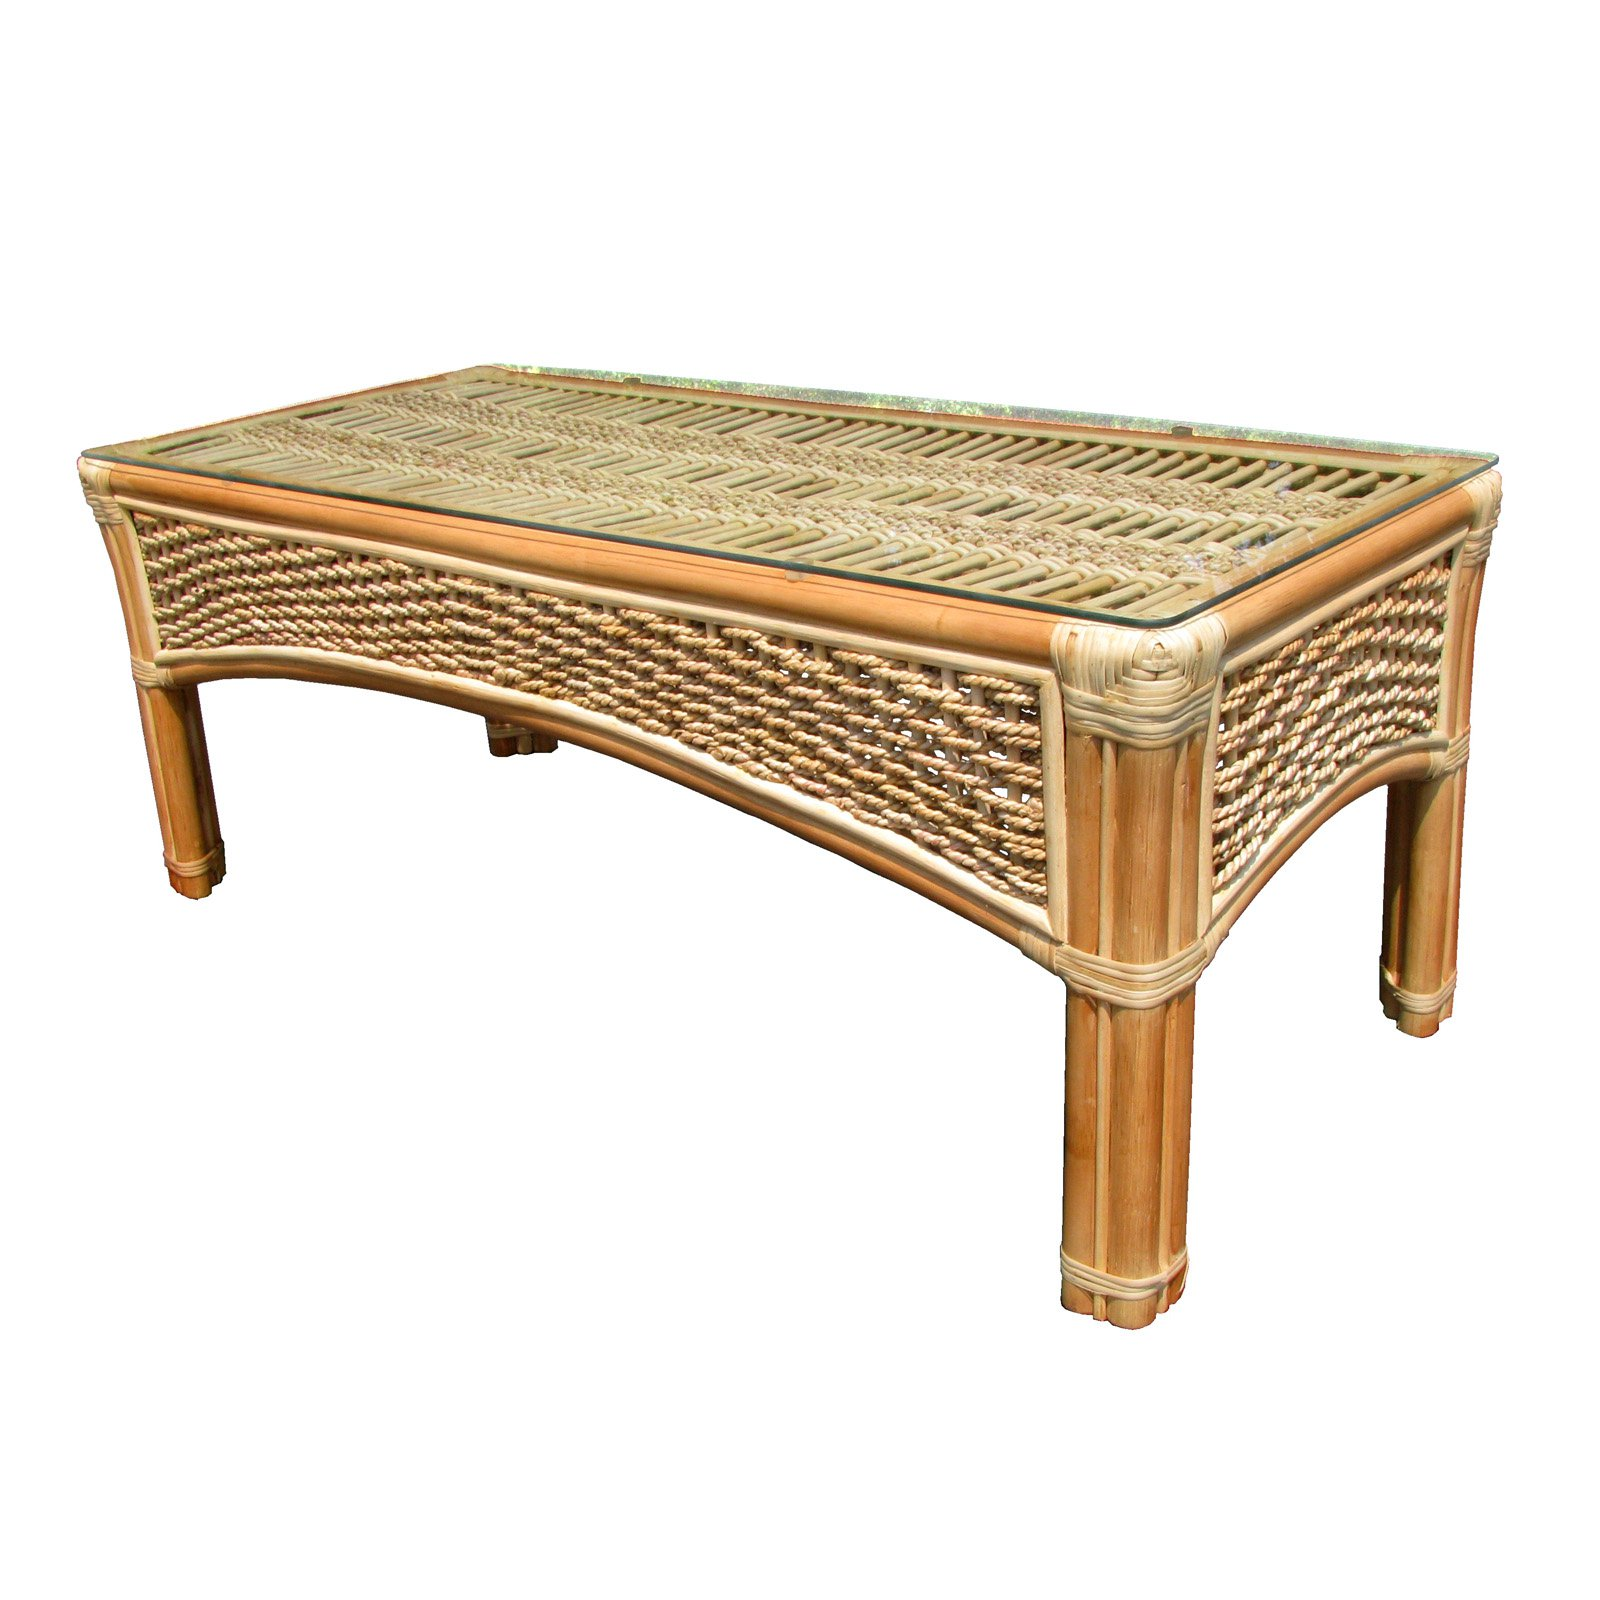 Spice Island Wicker Coffee Table by Yesteryear Wicker